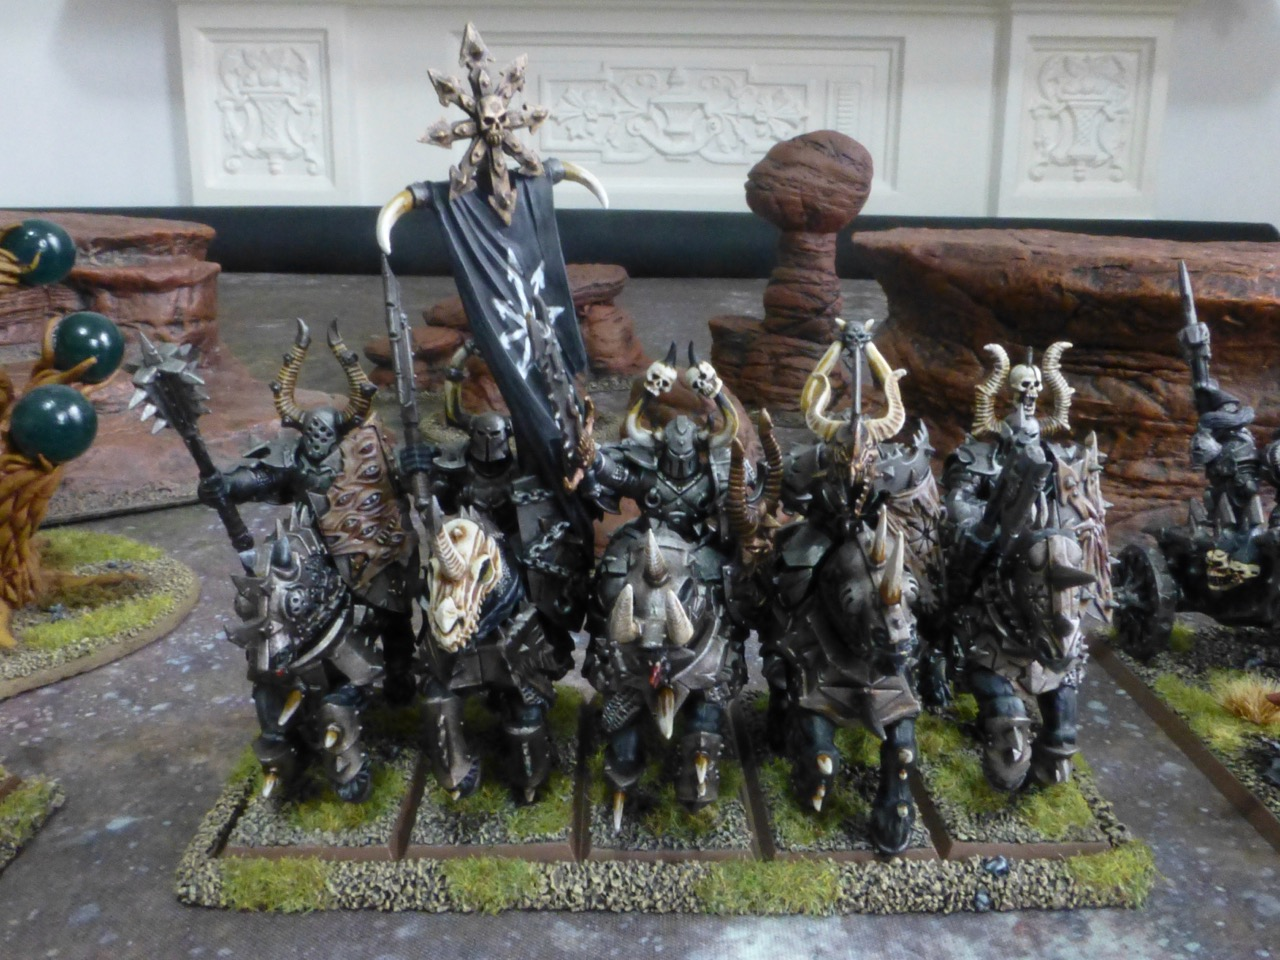 Five armoured riders on barded black horses